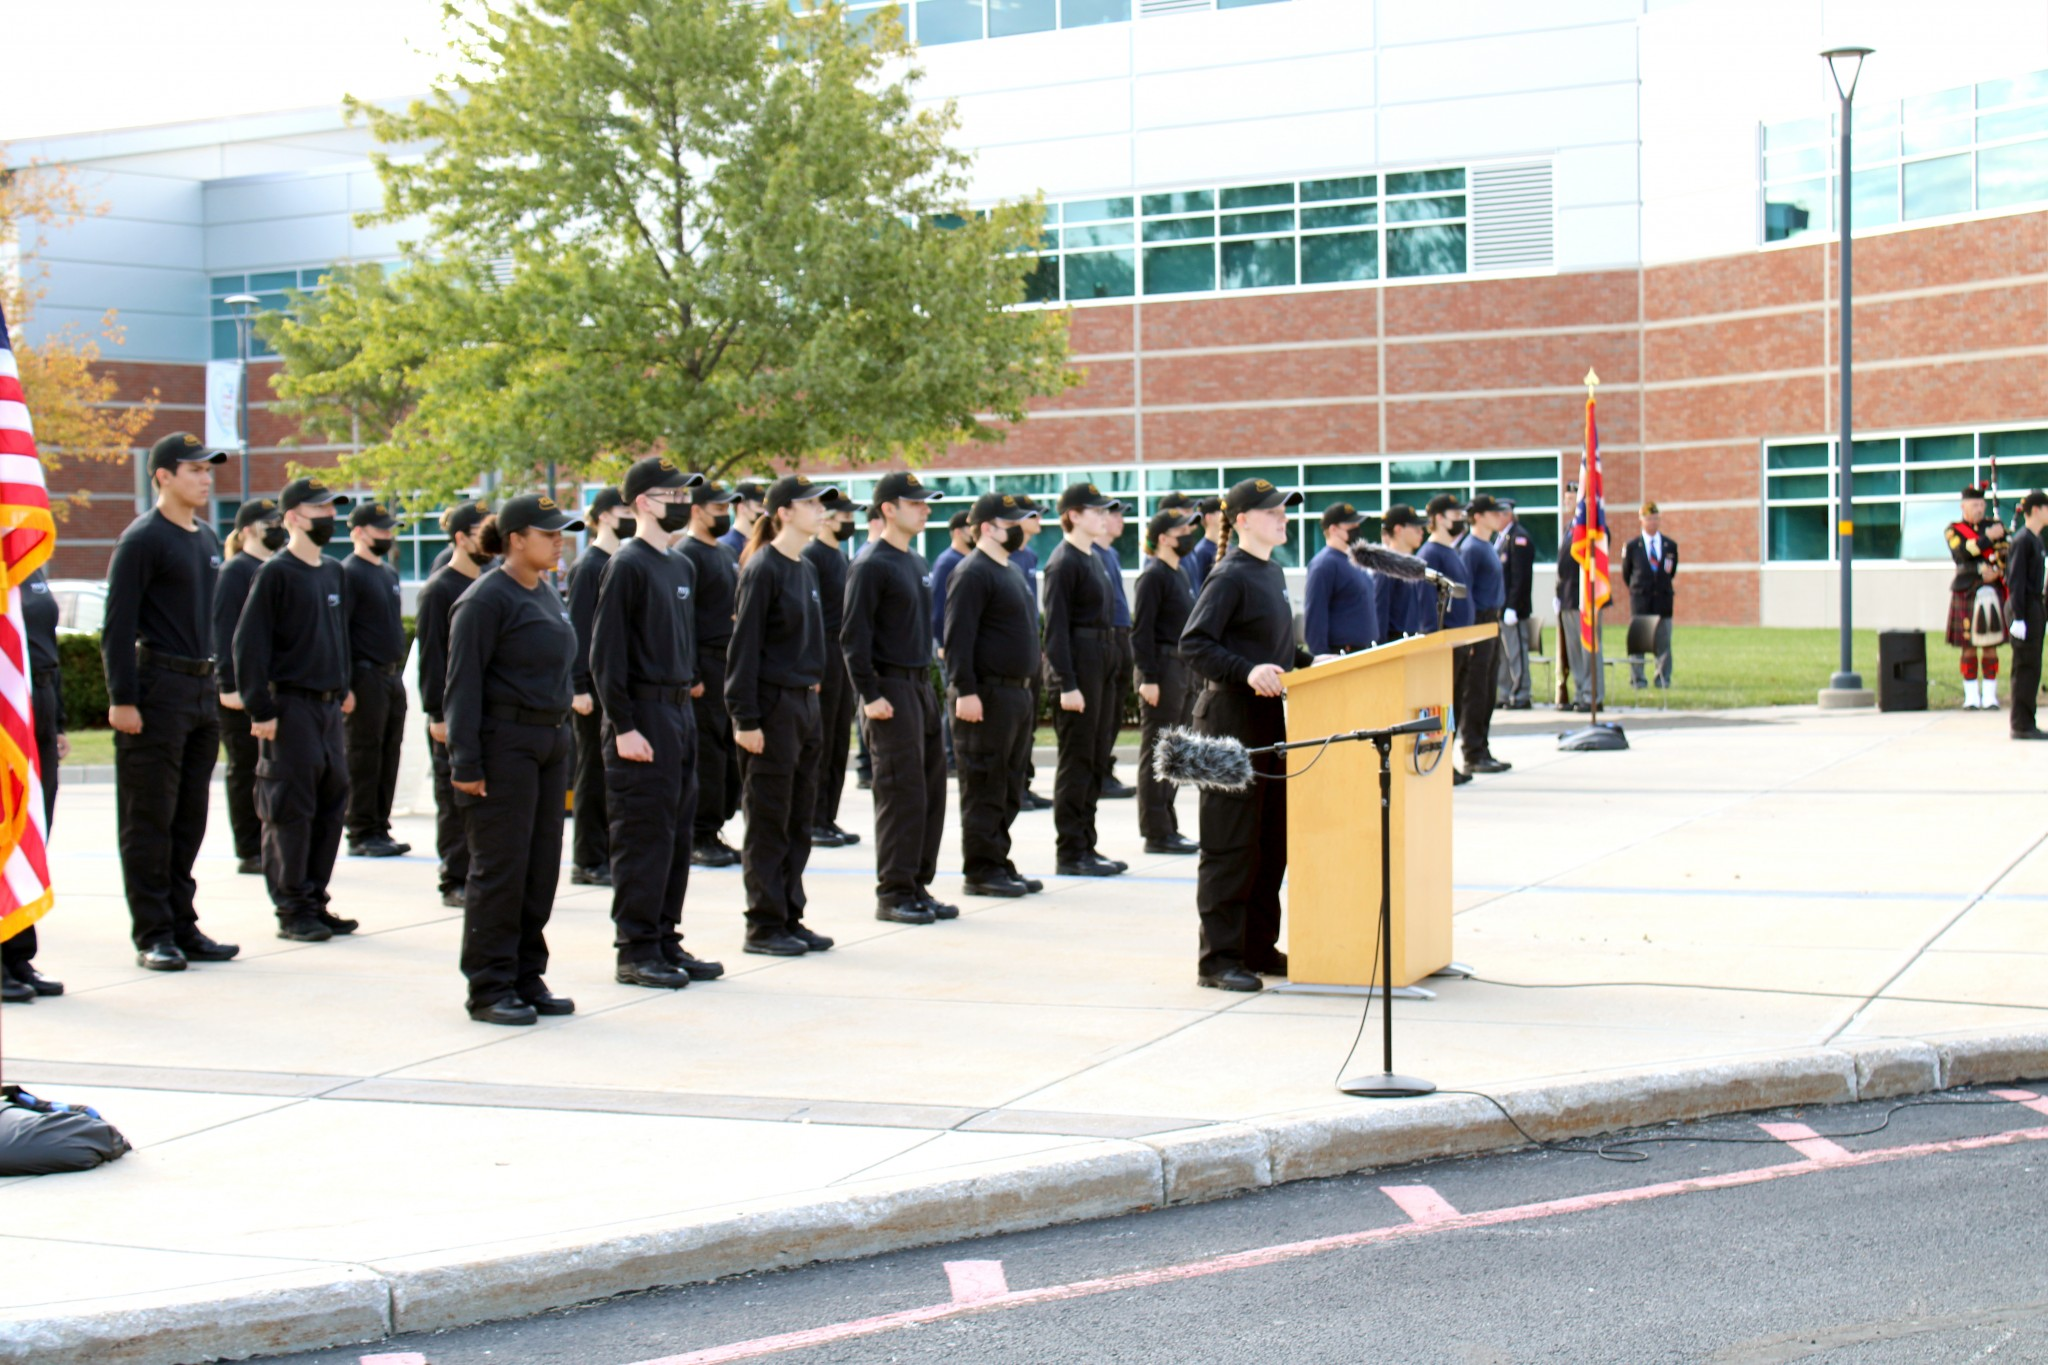 Meiah Smith (Northwood) from the Penta Career Center's Criminal Justice, served as the emcee and student speaker at the school's recent Patriot Day ceremony, held Sept. 10. (Submitted photo)